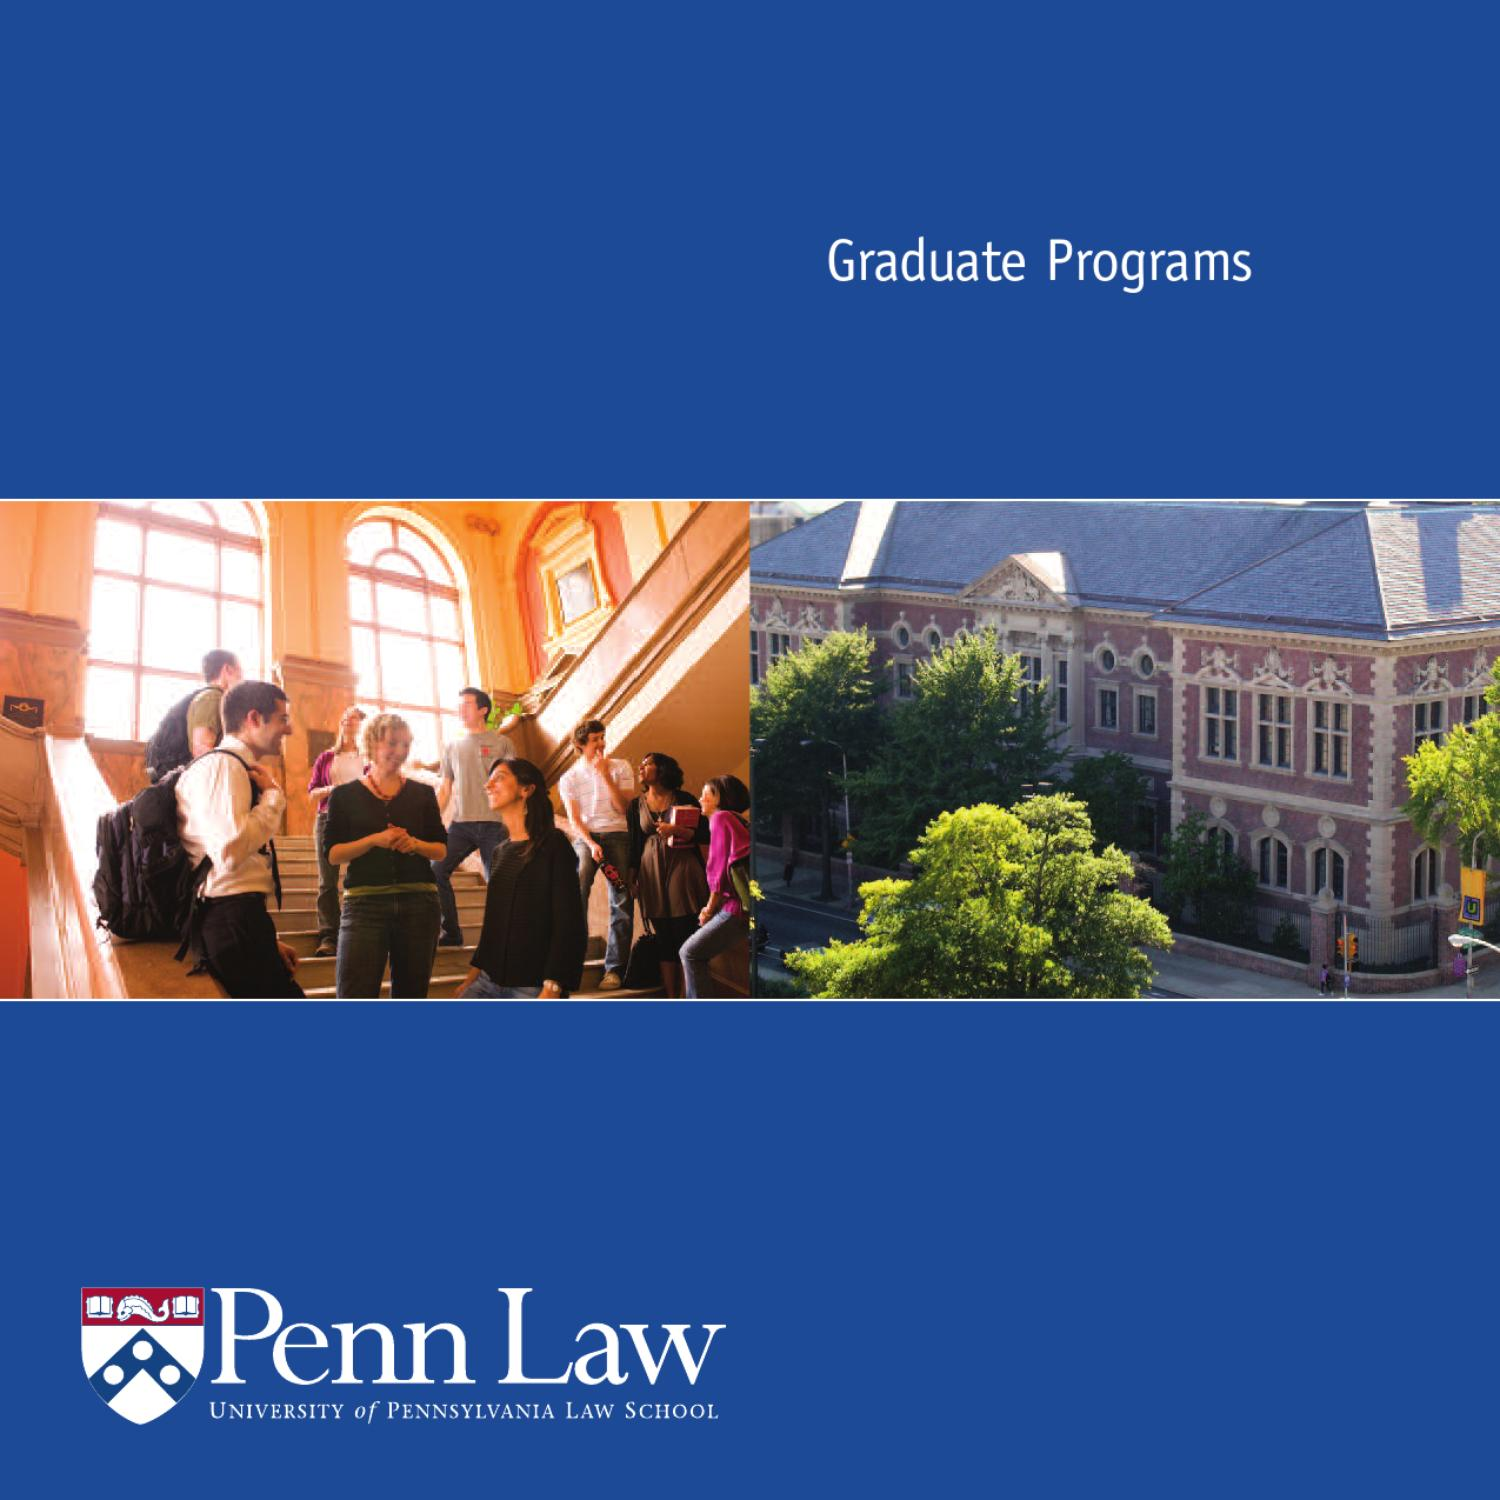 Graduate Programs Viewbook 2012 By Penn Law Its  Issuu. University Of Iowa Graduate Programs. Rest In Peace Message. 4th Of July Posts. Super Bowl Posters. Kindergarten Report Card Template. Banner Design Online. Good Cash Sale Invoice Template. Fitness Gift Certificate Template